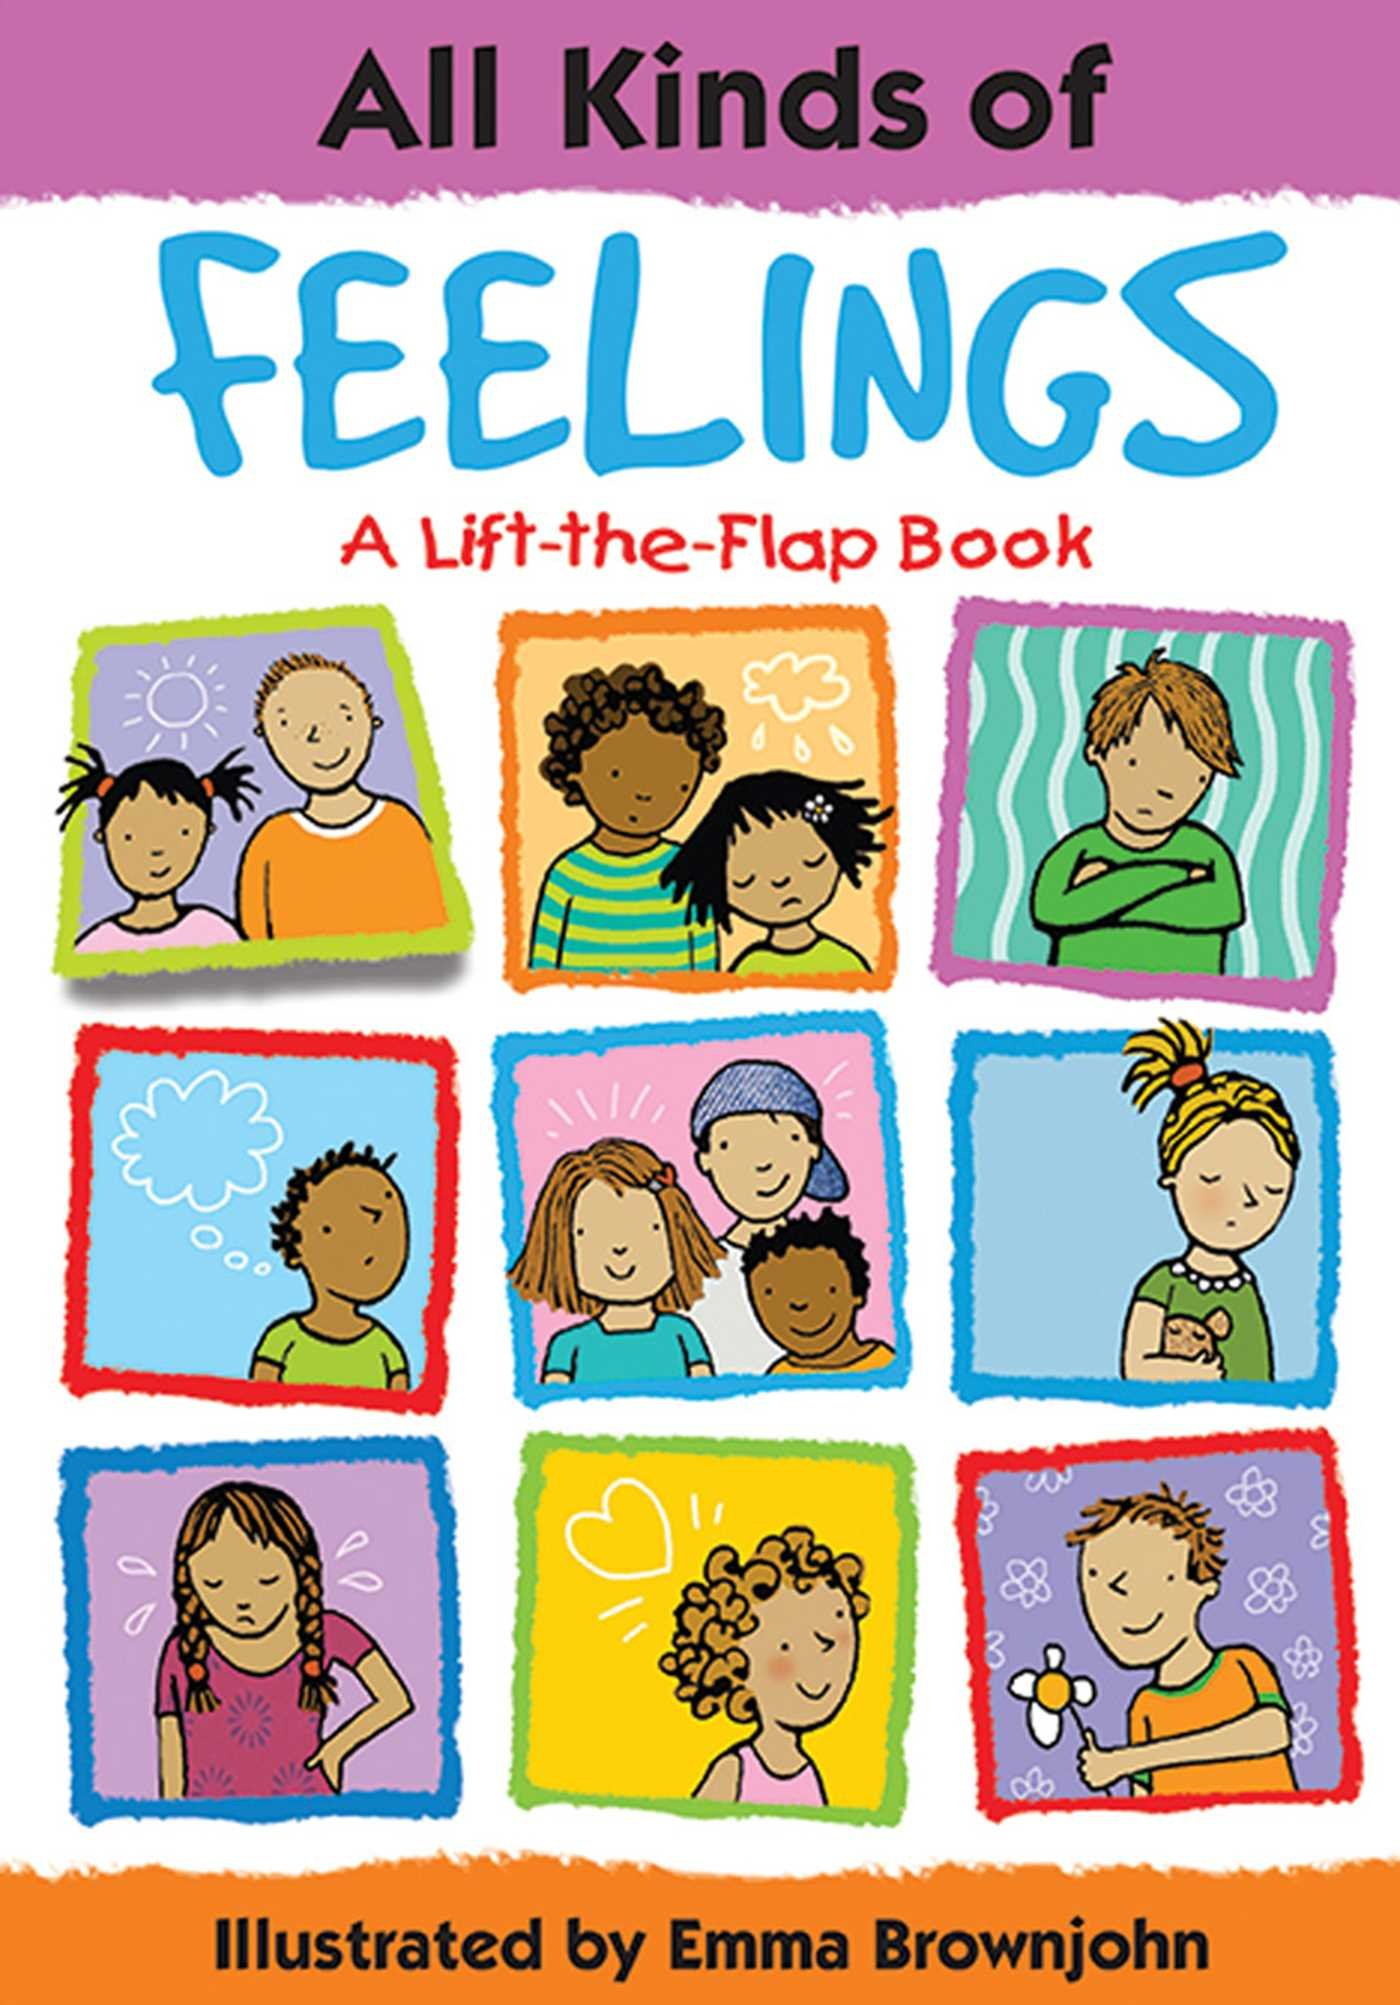 Download All Kinds of Feelings (All Kinds Of.(Insight Editions)) ePub fb2 book